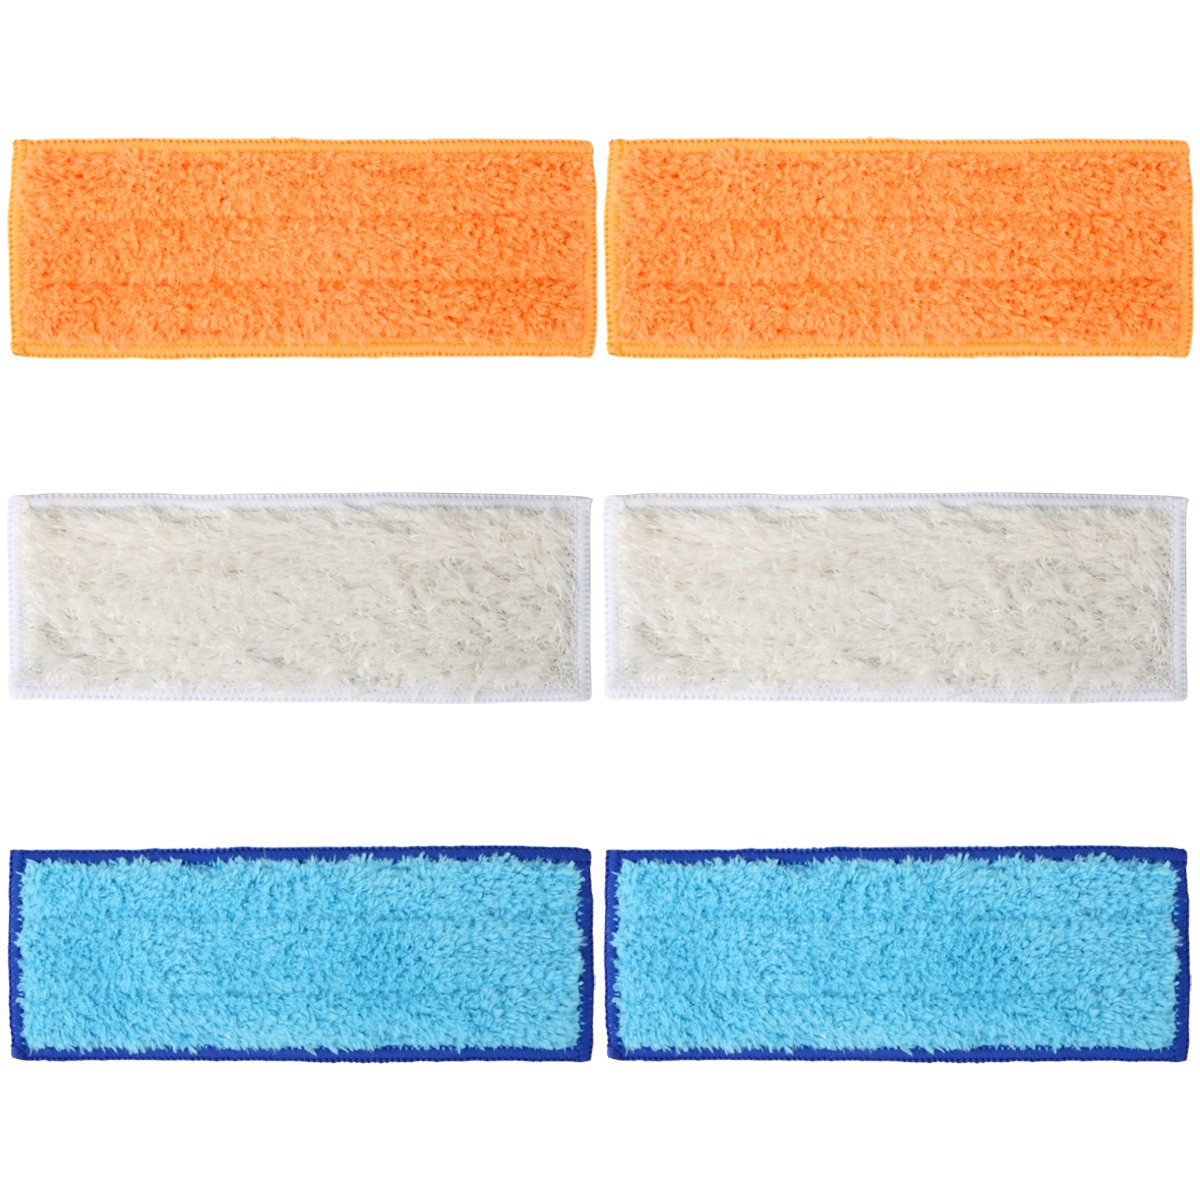 Wolf Filter 6 Packs Washable Mopping Pads for iRobot Braava Jet 240 241 (2 Wet Mopping Pads, 2 Damp Sweeping Pads and 2 Dry Sweeping Pads)